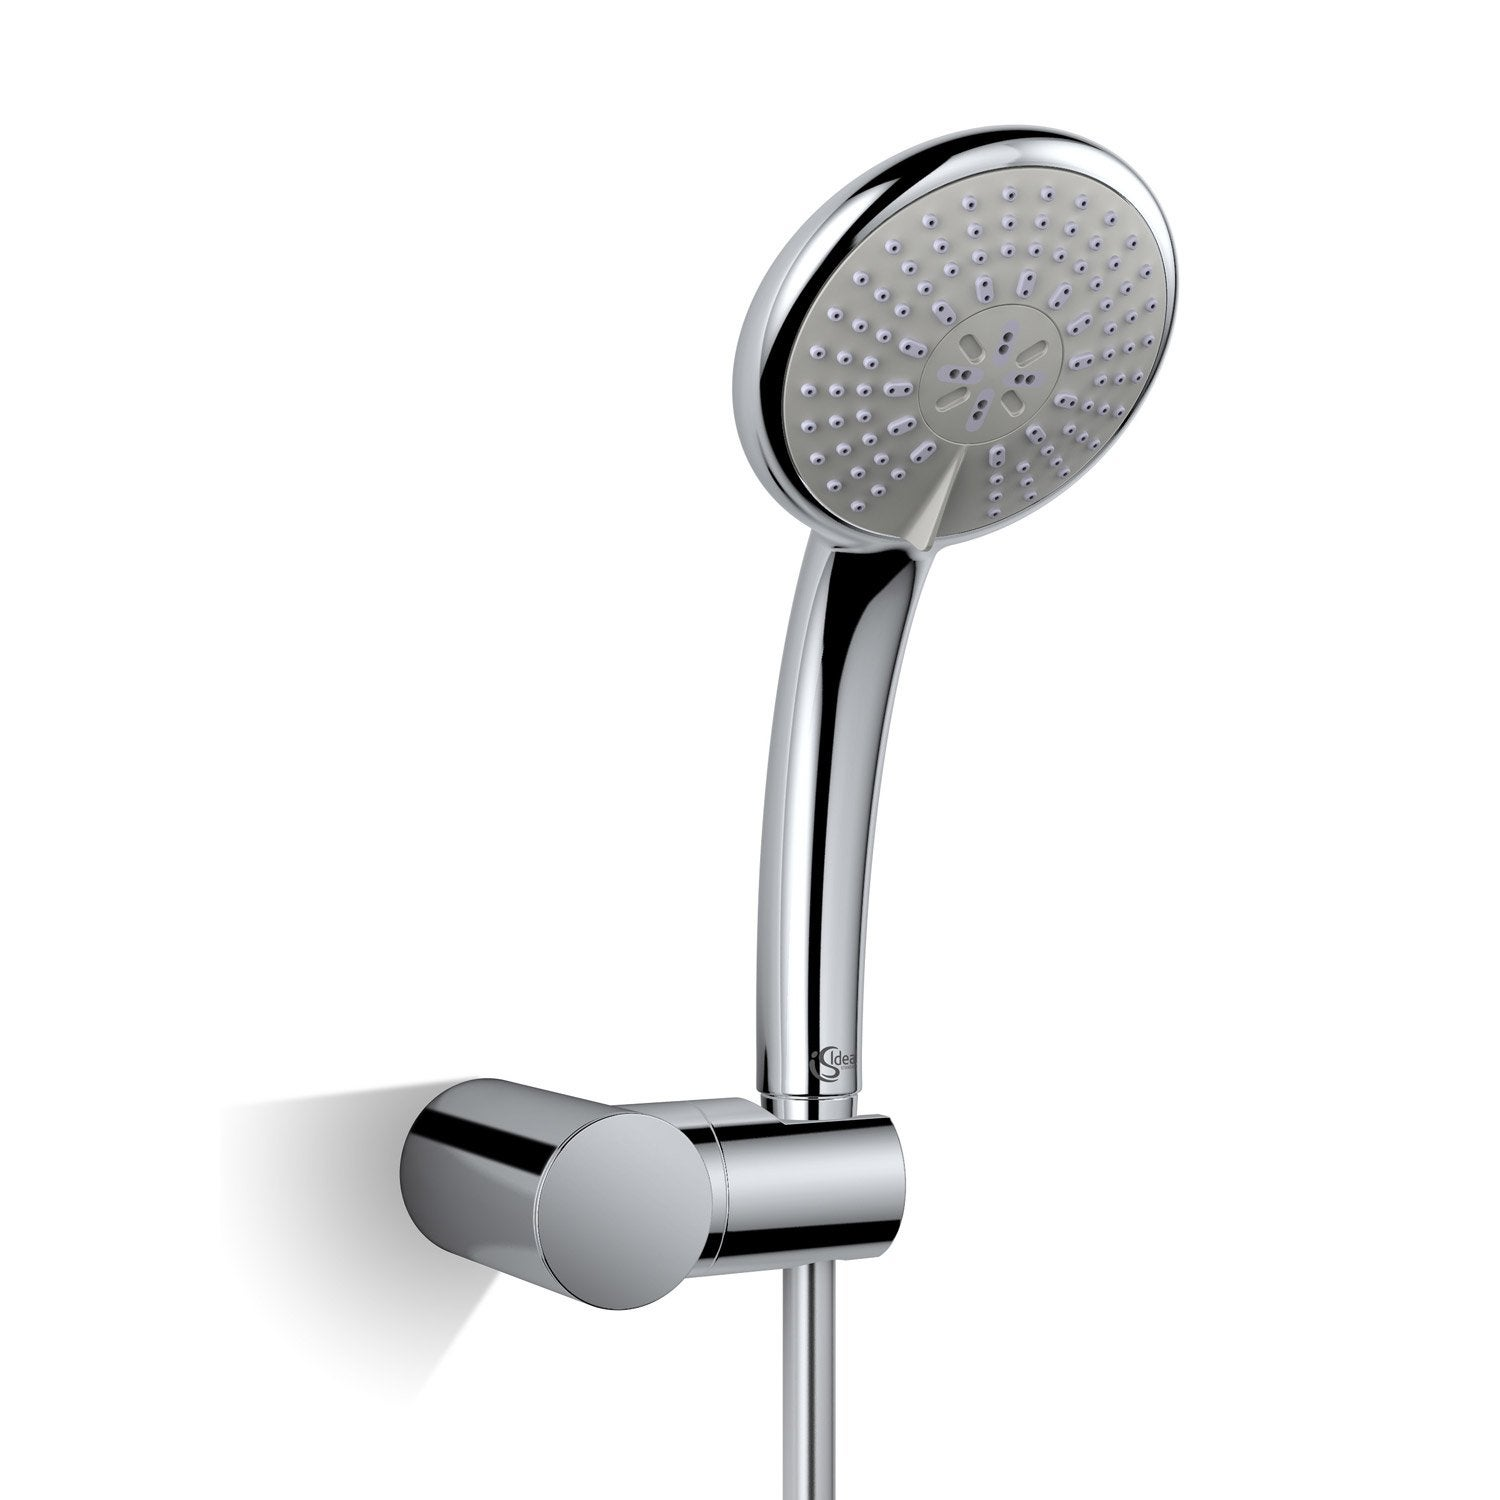 Colonne de douche ideal standard idealaqua - Ensemble de douche leroy merlin ...